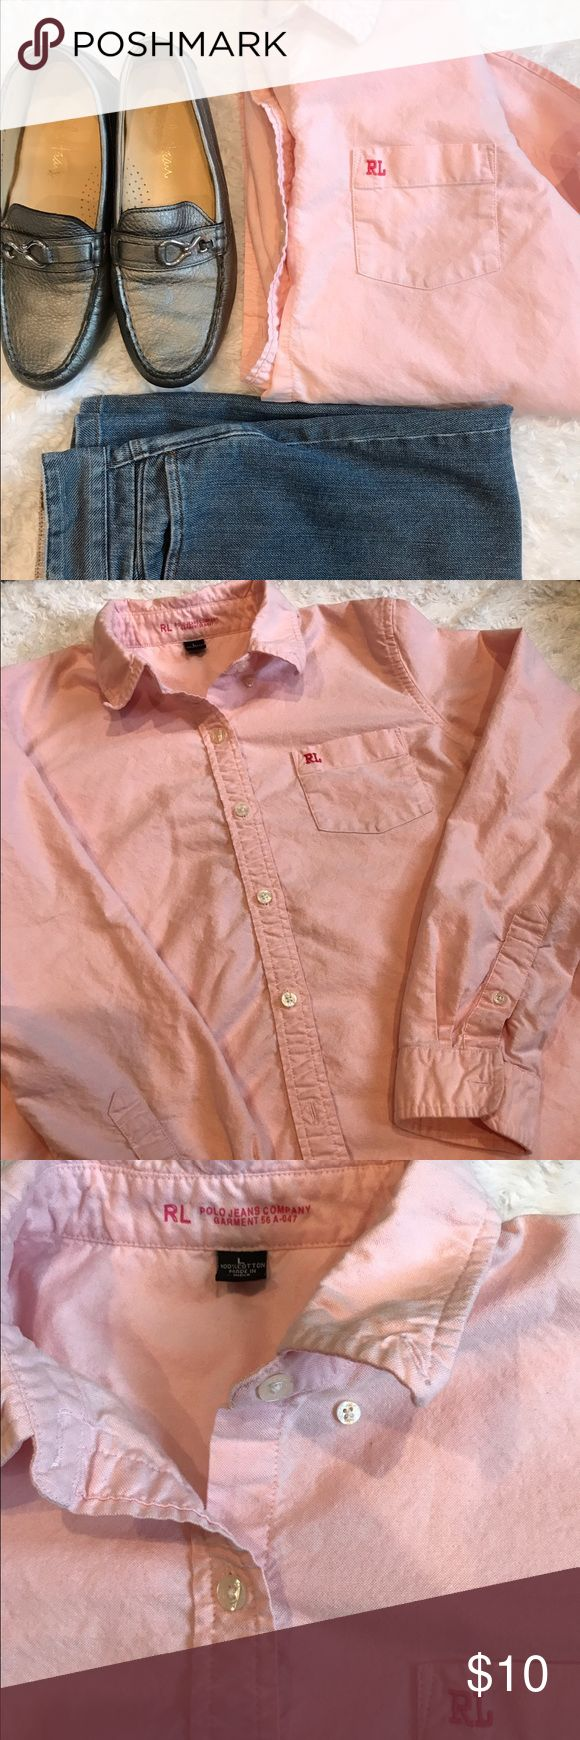 RL Polo Jeans Shirt Cotton Button down shirt, very soft and comfortable. Excellent used condition. Ralph Lauren Tops Button Down Shirts